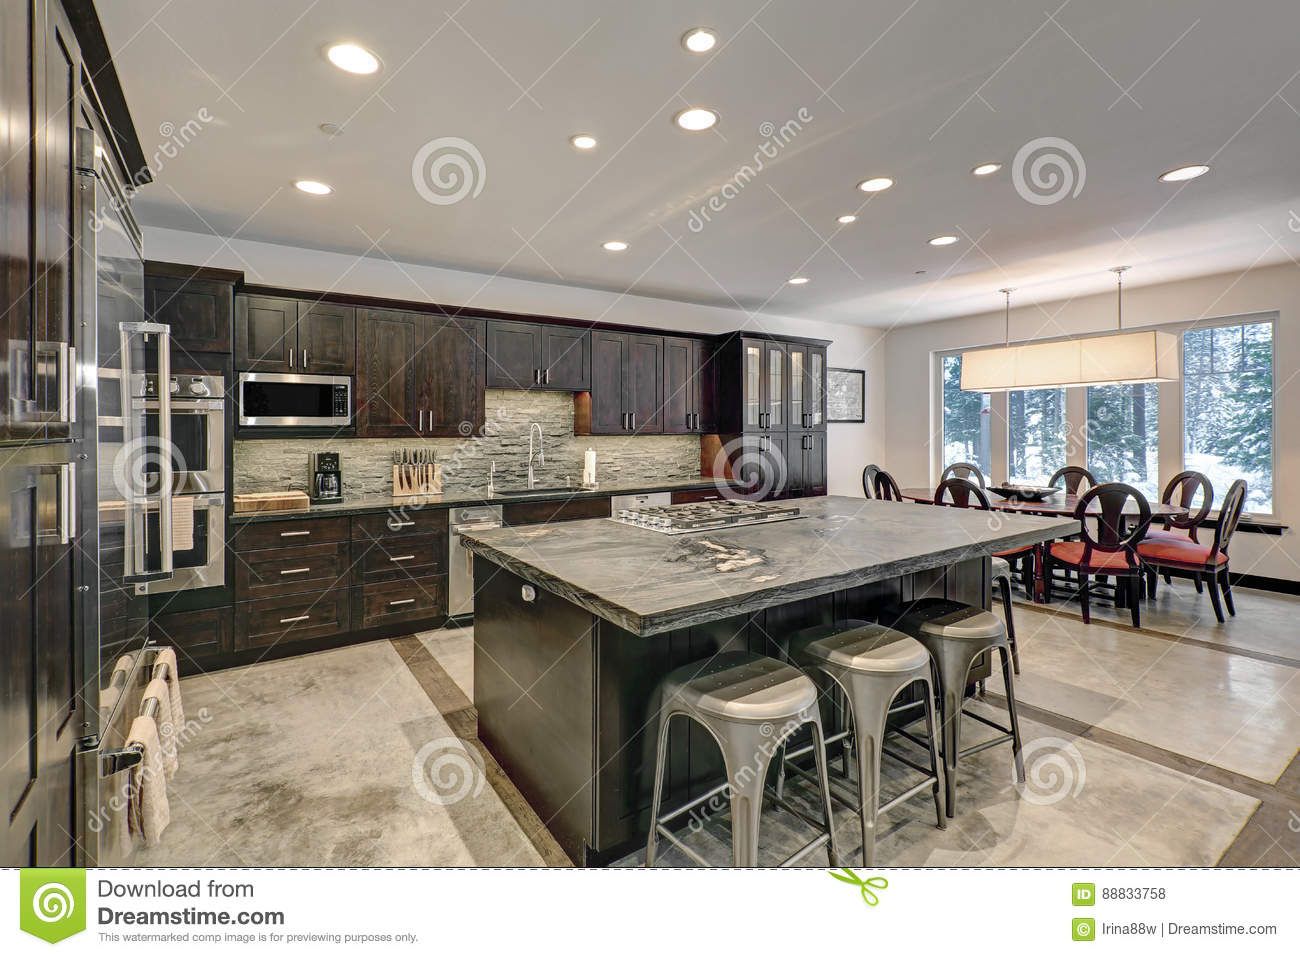 Modern Traditional American Kitchen Design In Grey Tones Stock